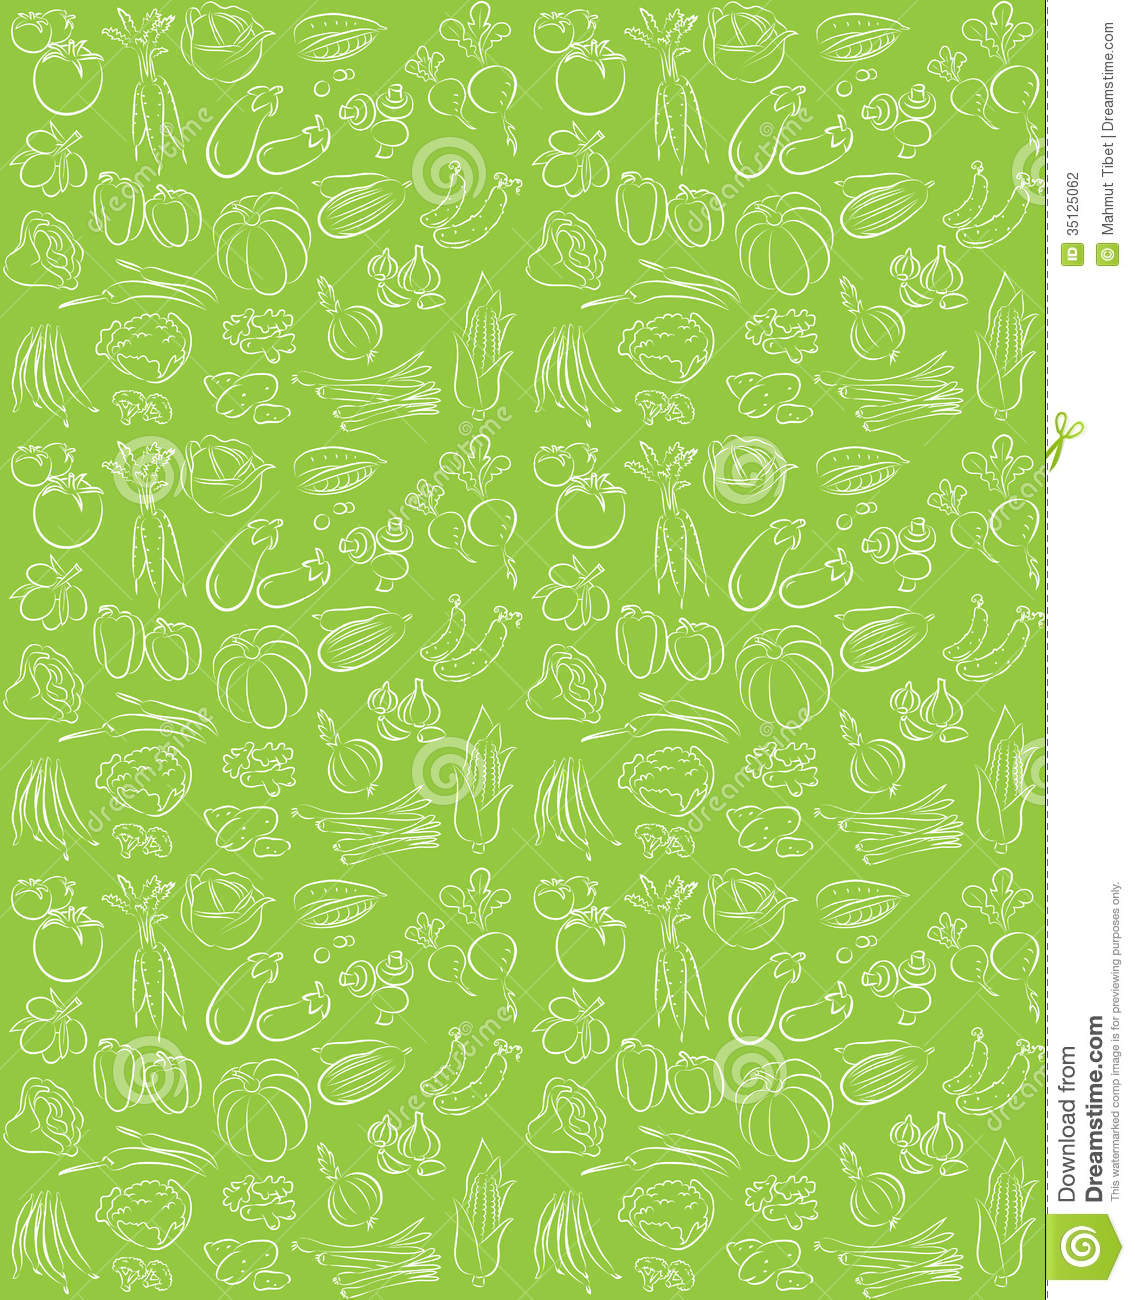 Vegetable pattern - photo#16